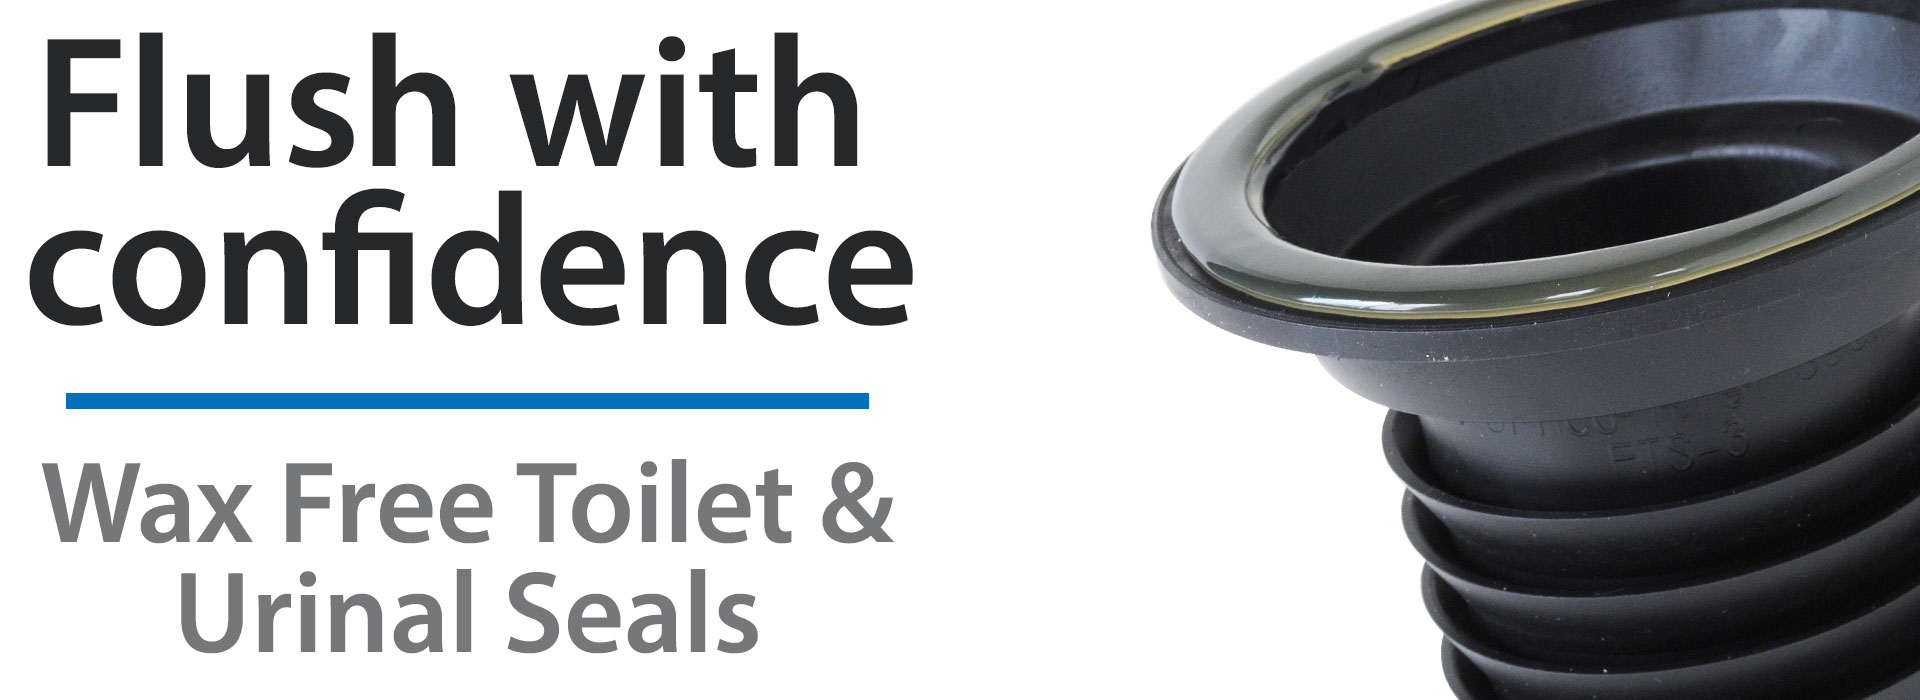 Flush with confidence - Wax Free Toilet & Urinal Seals